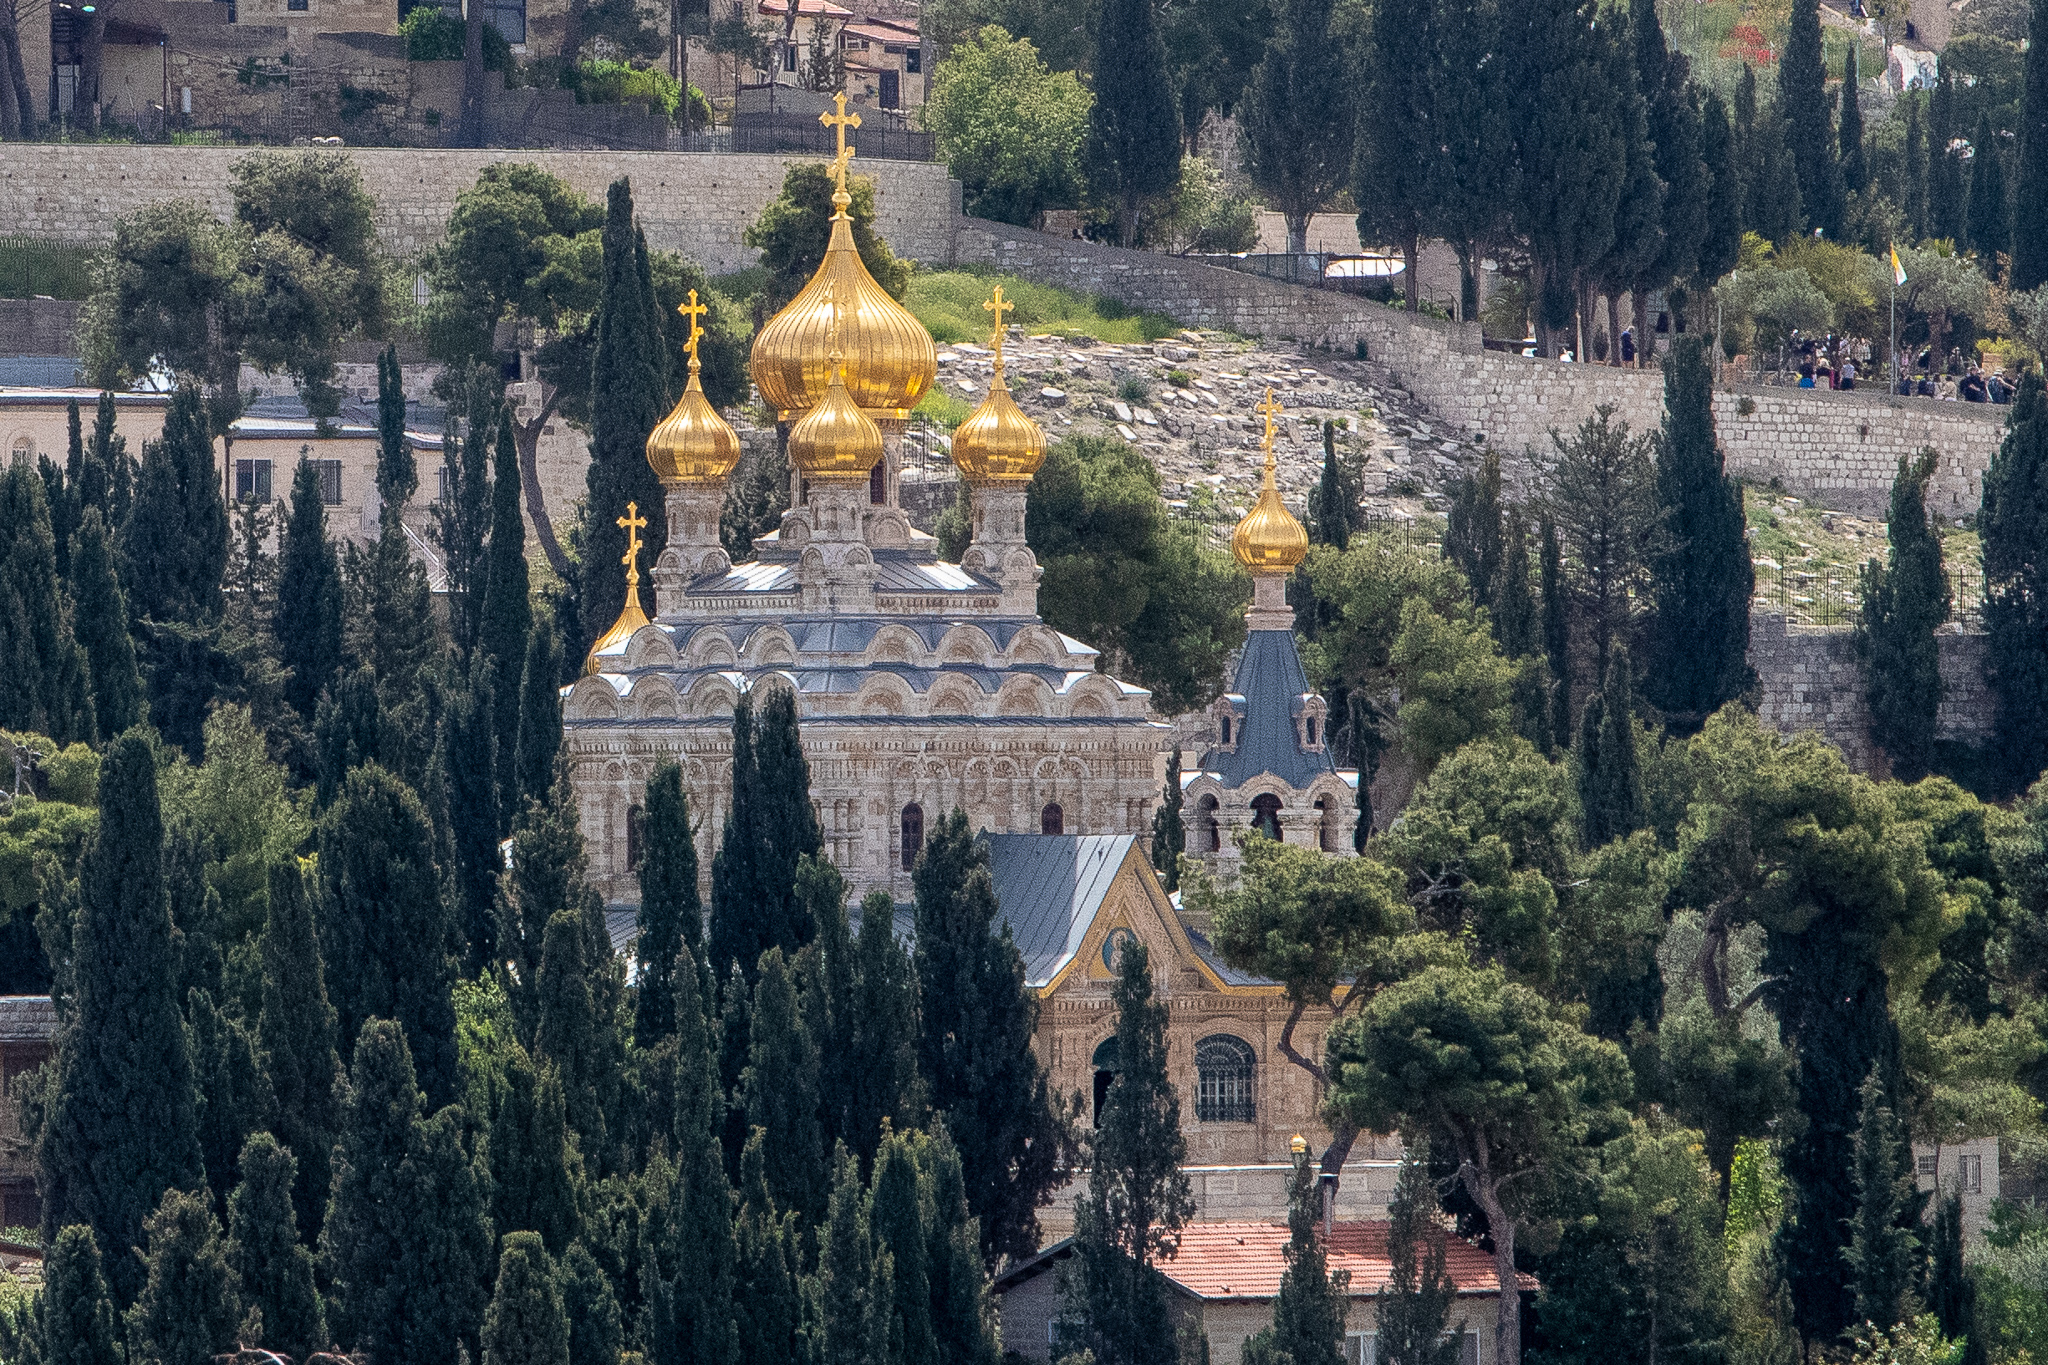 The Mary of Magdalene Church with six of its seven gilded onion domes visible